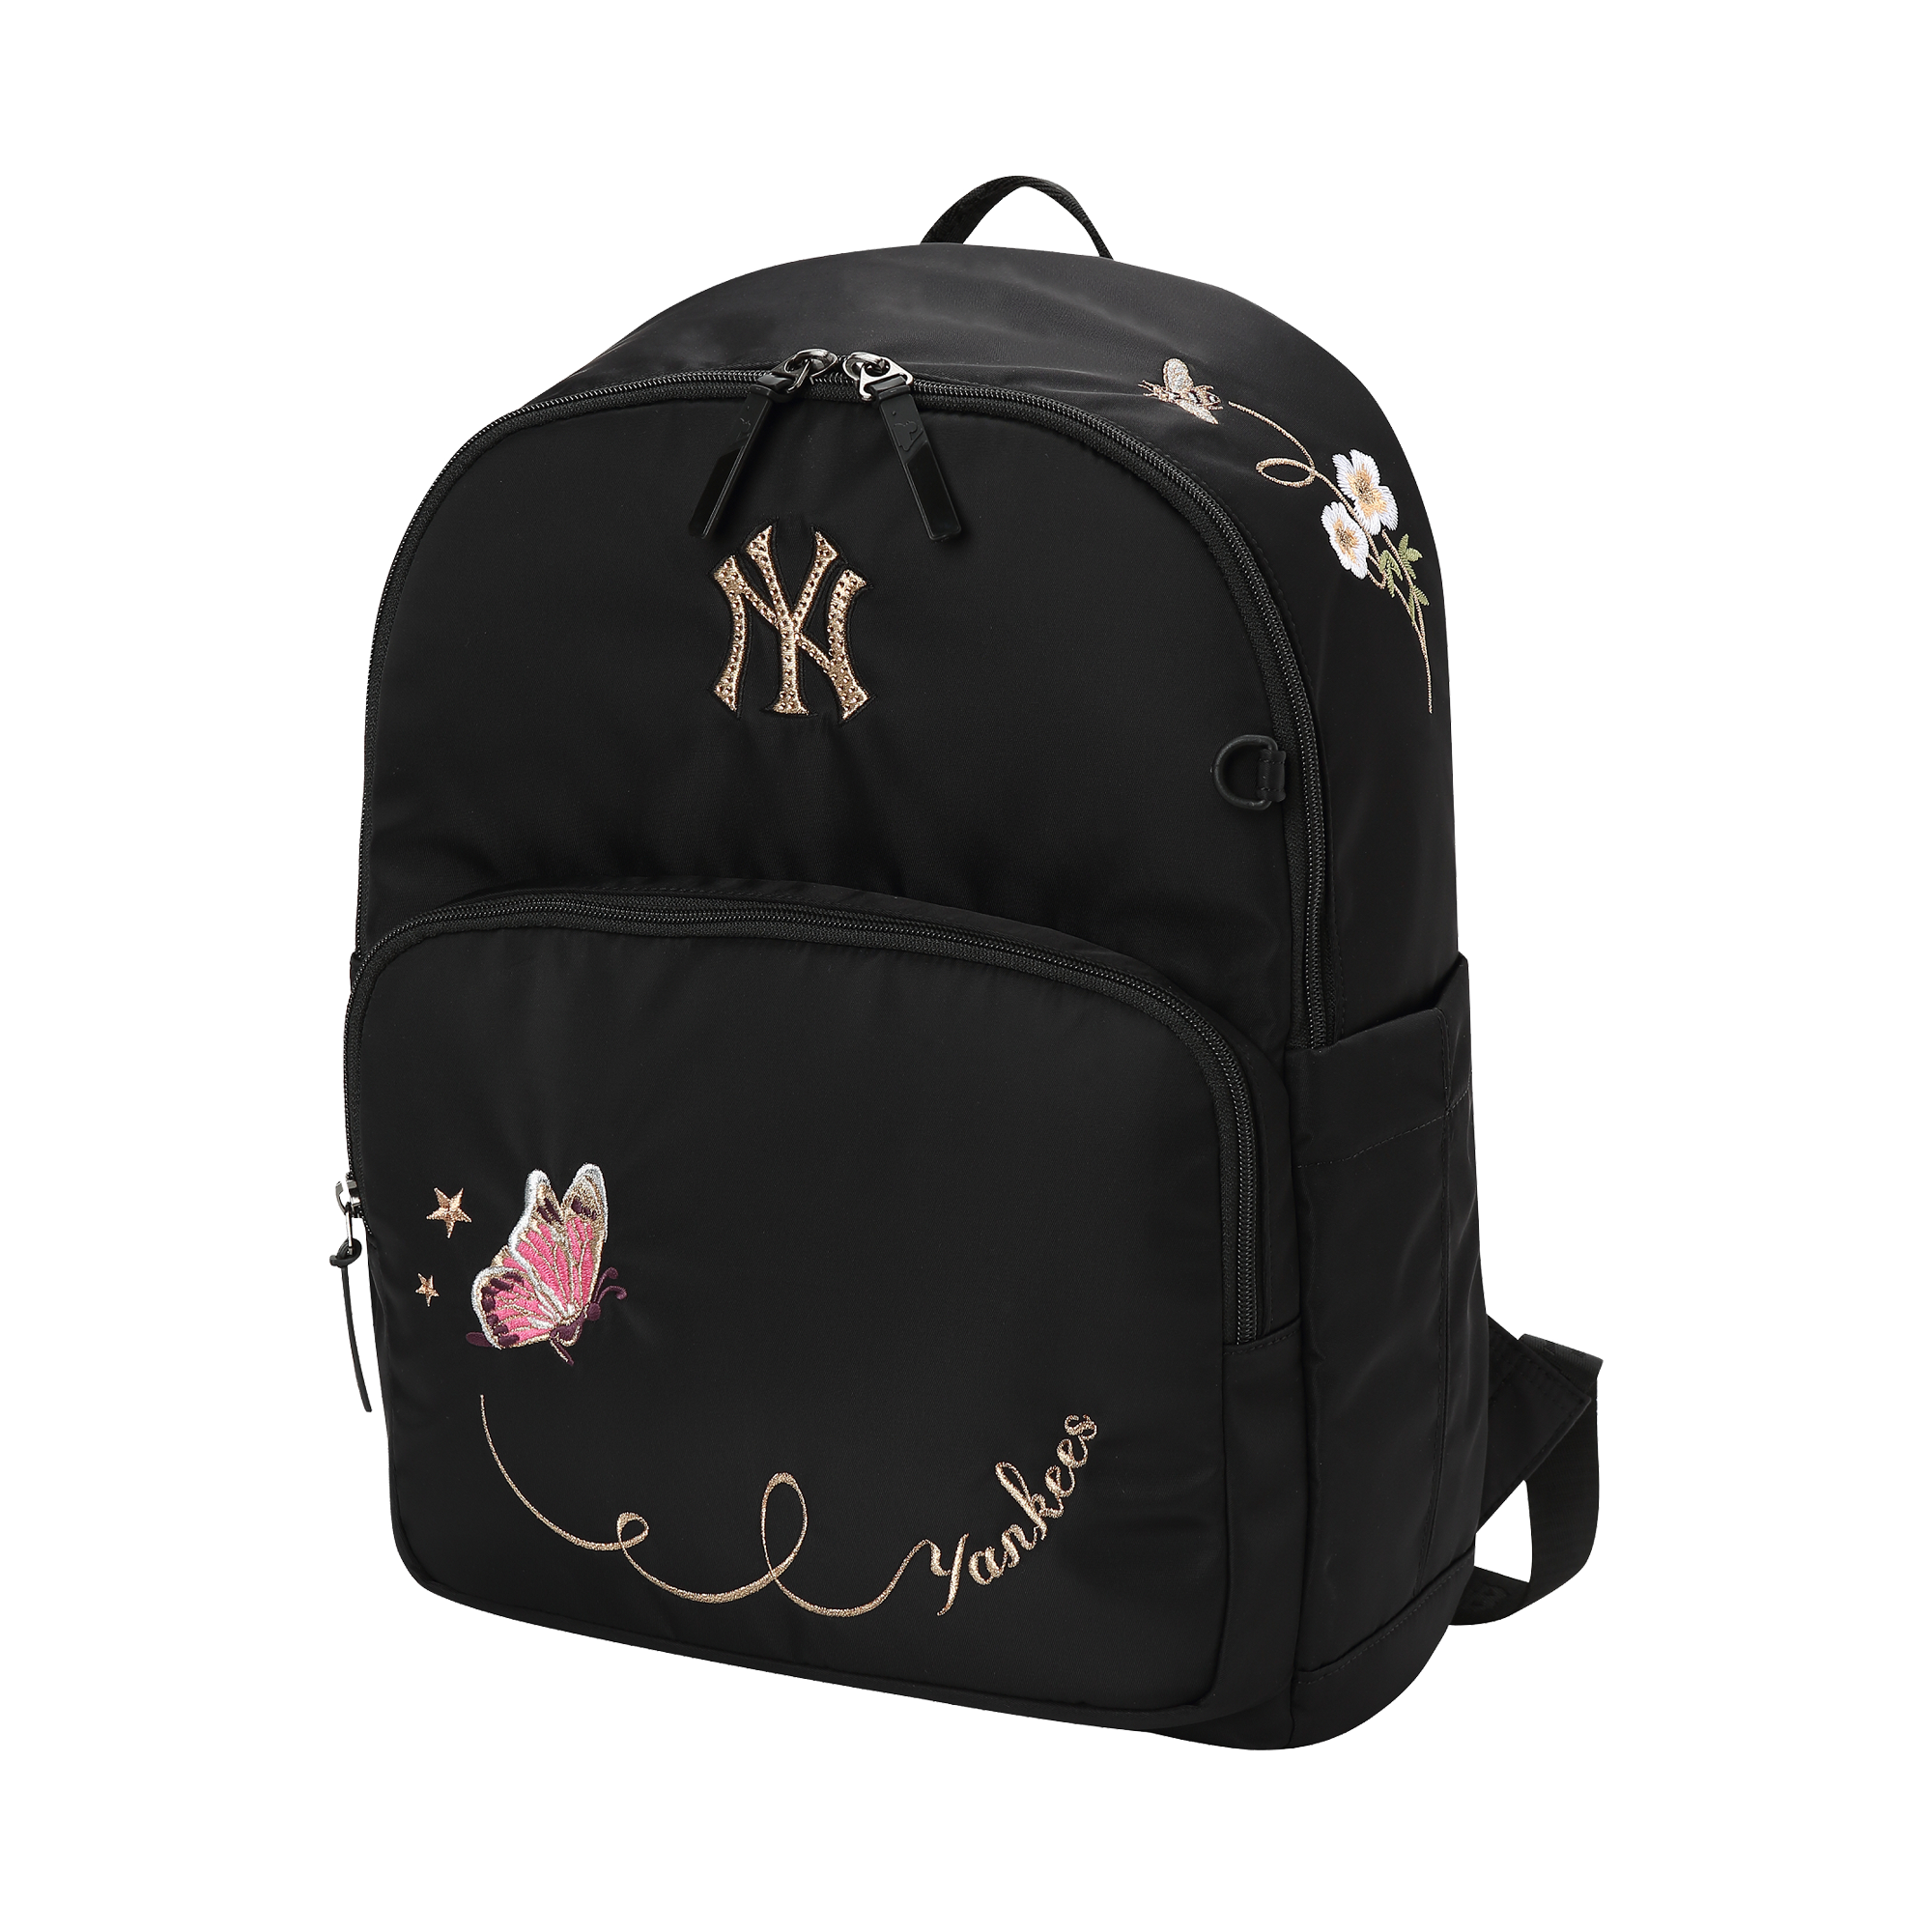 MLBKIDS SCHOOL BAG NEW YORK YANKEES GOLDBEE BUTTERFLY BACKPACK